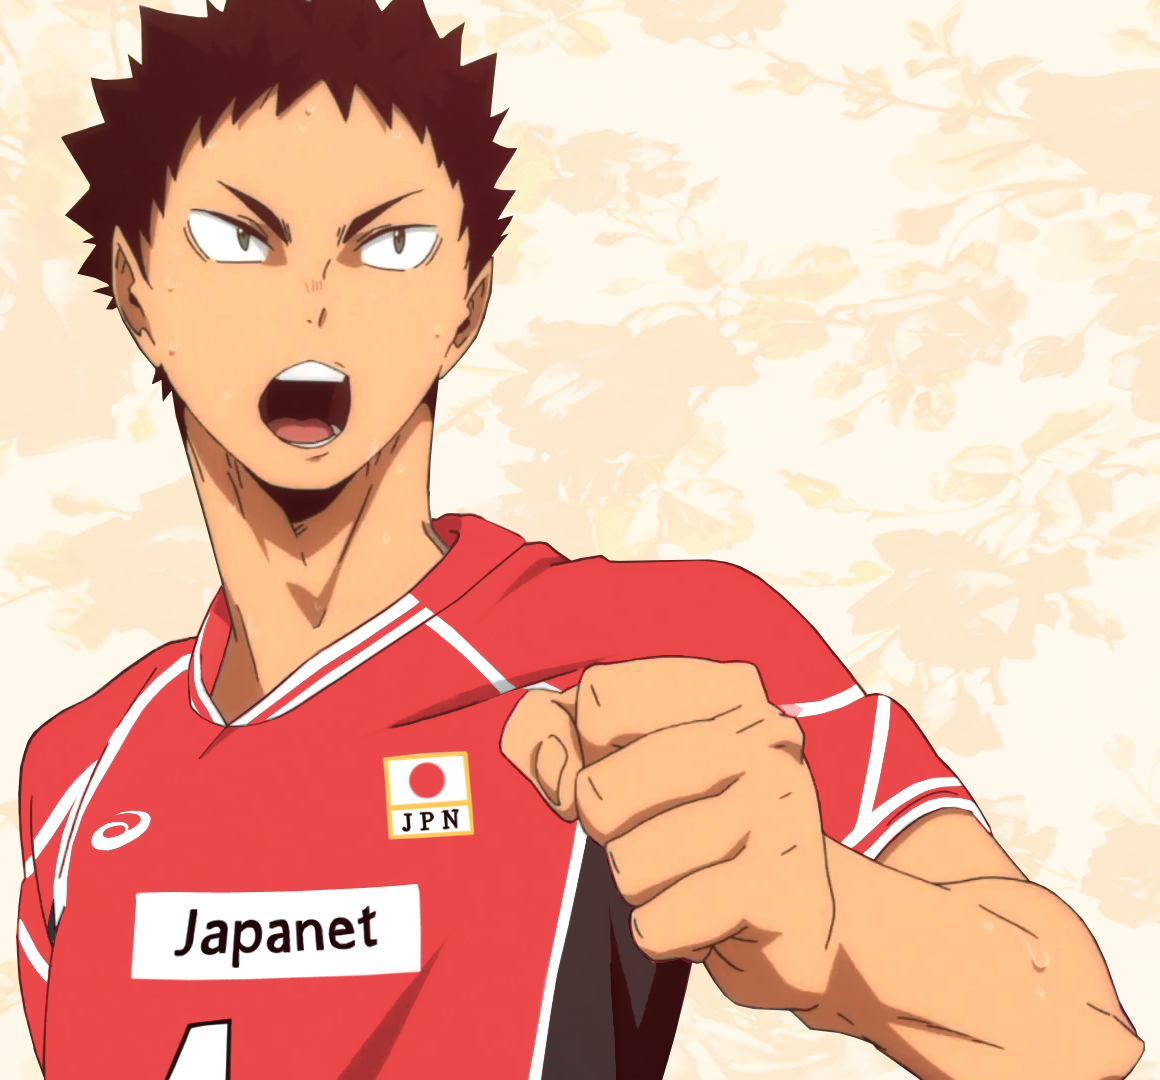 Atsumus Iwaizumi Week Day Five Team Swap Sports Day Memorable Quotes Tricot Swap Ft Iwaizumi In Japan Me Japan Volleyball Team Sports Day Iwaizumi